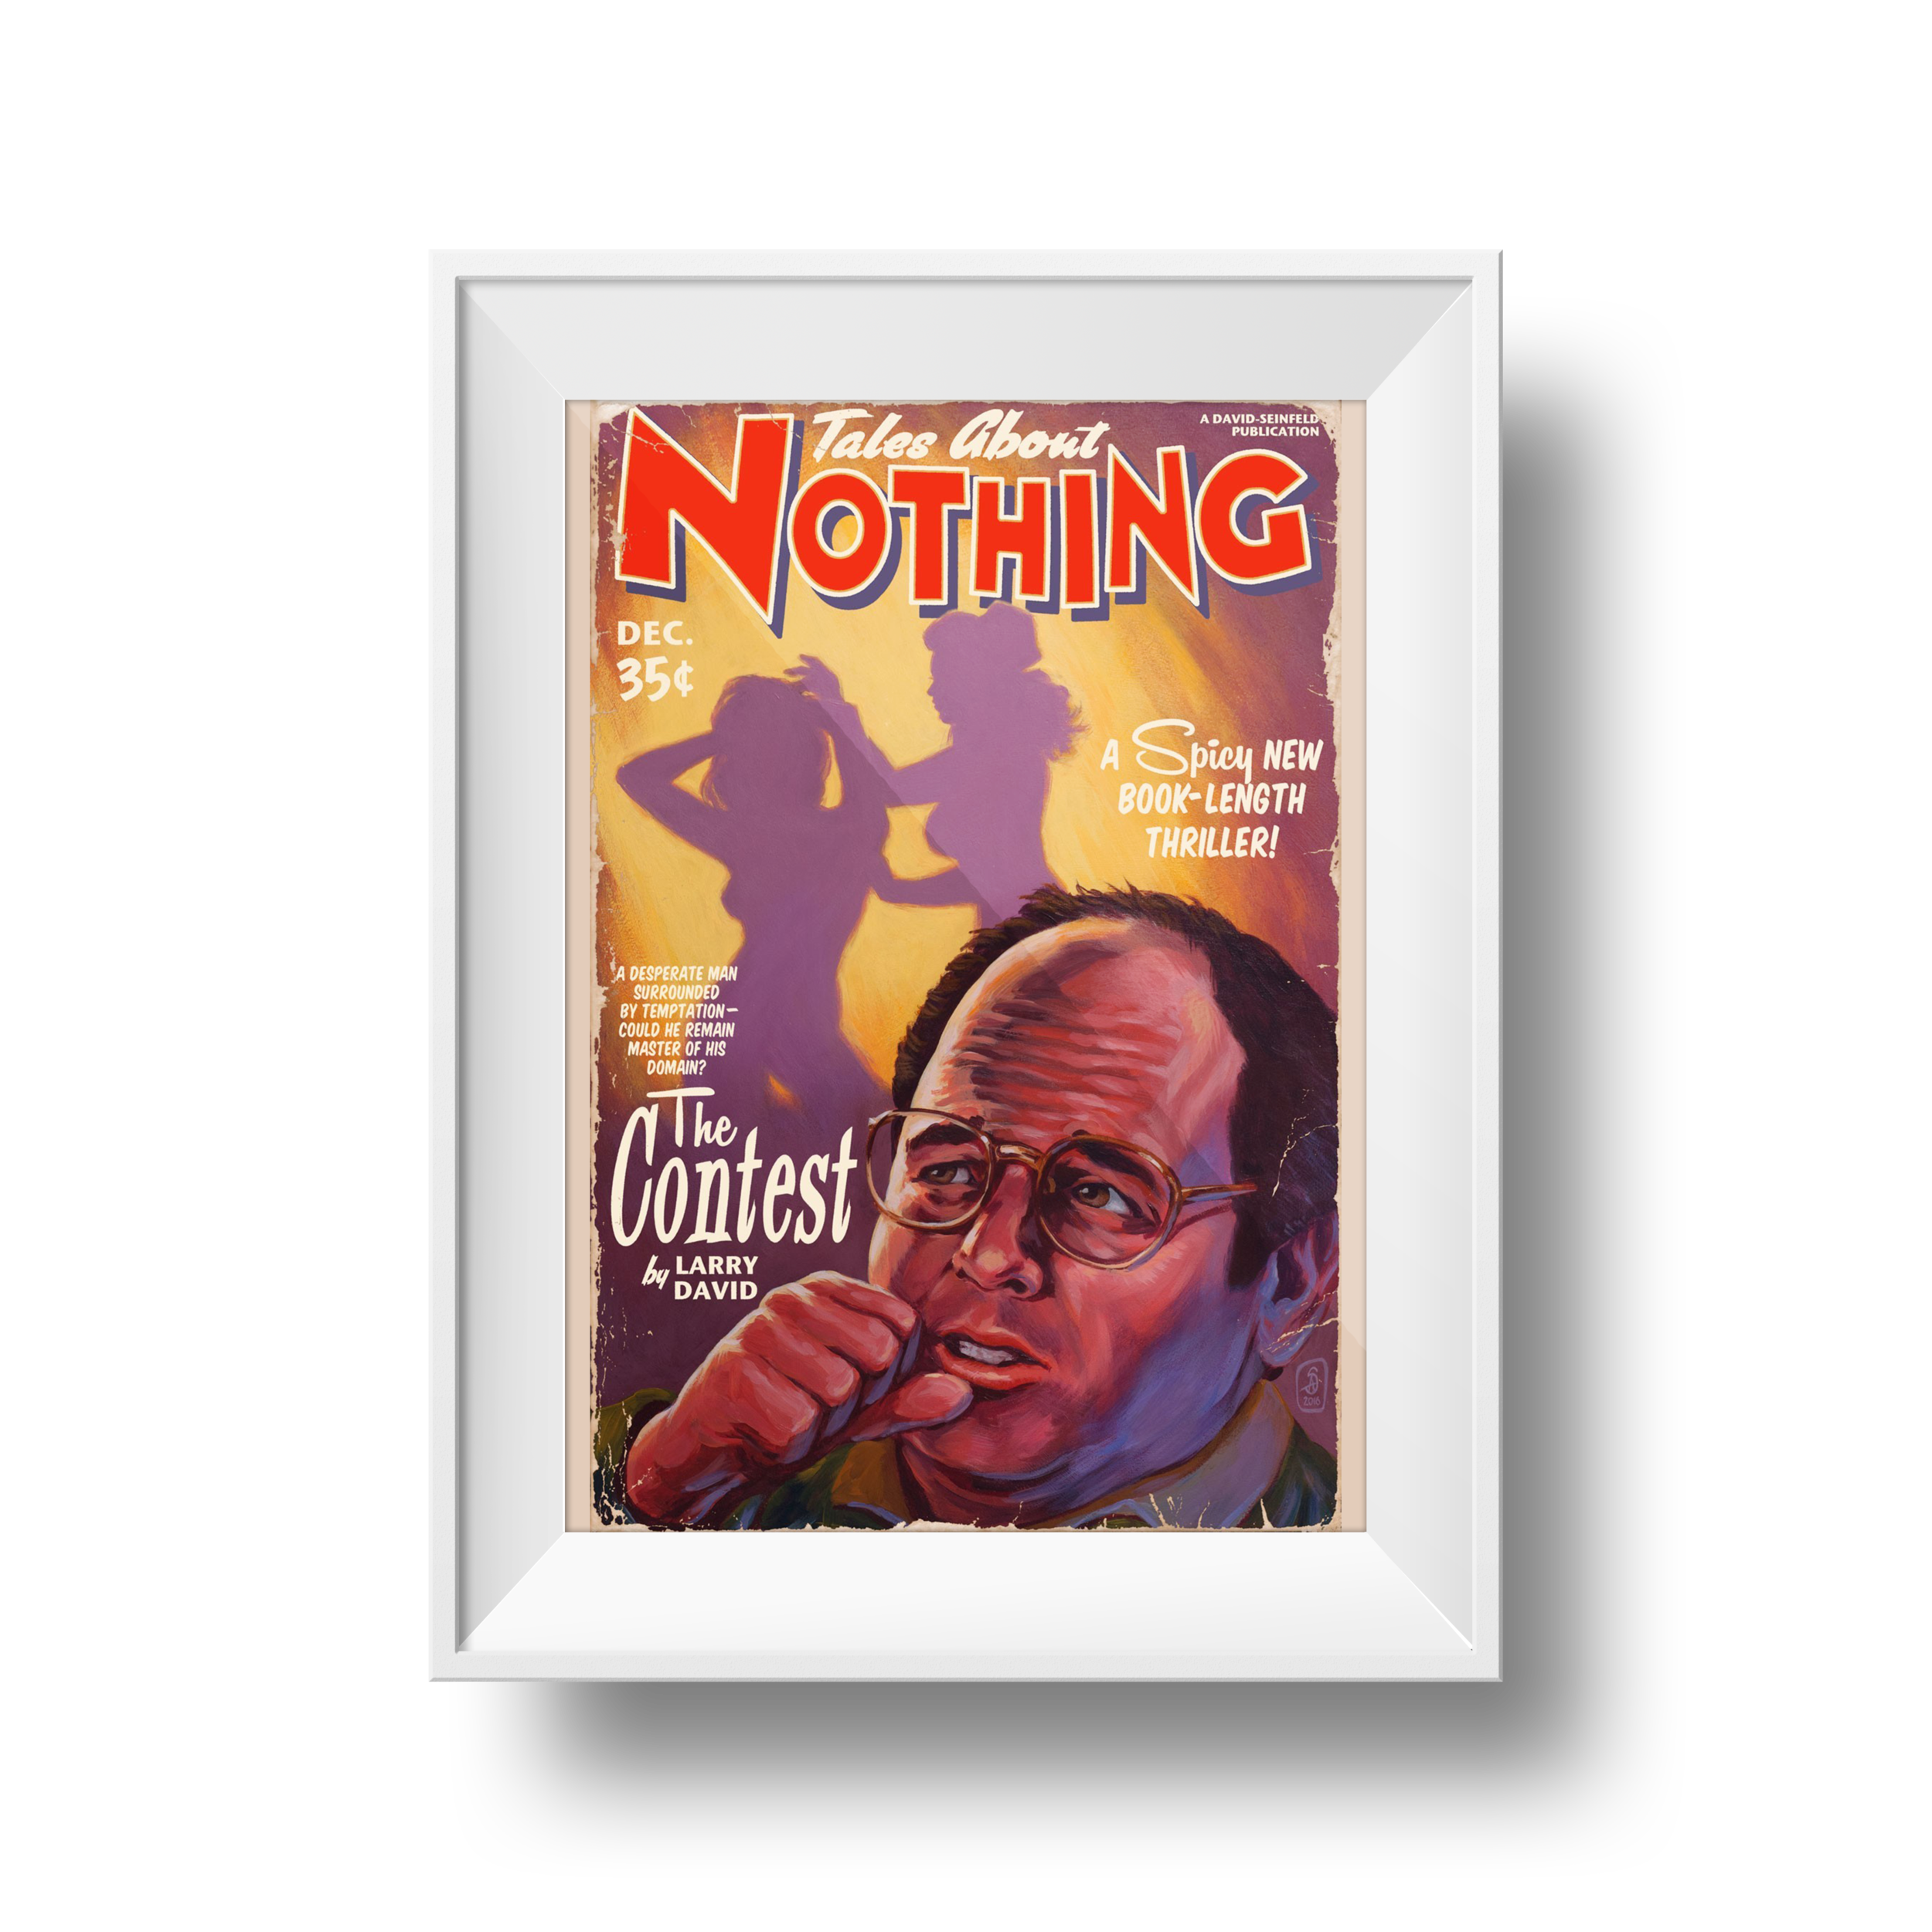 Tales About Nothing: The Contest | Stephen Andrade | 11 x 17